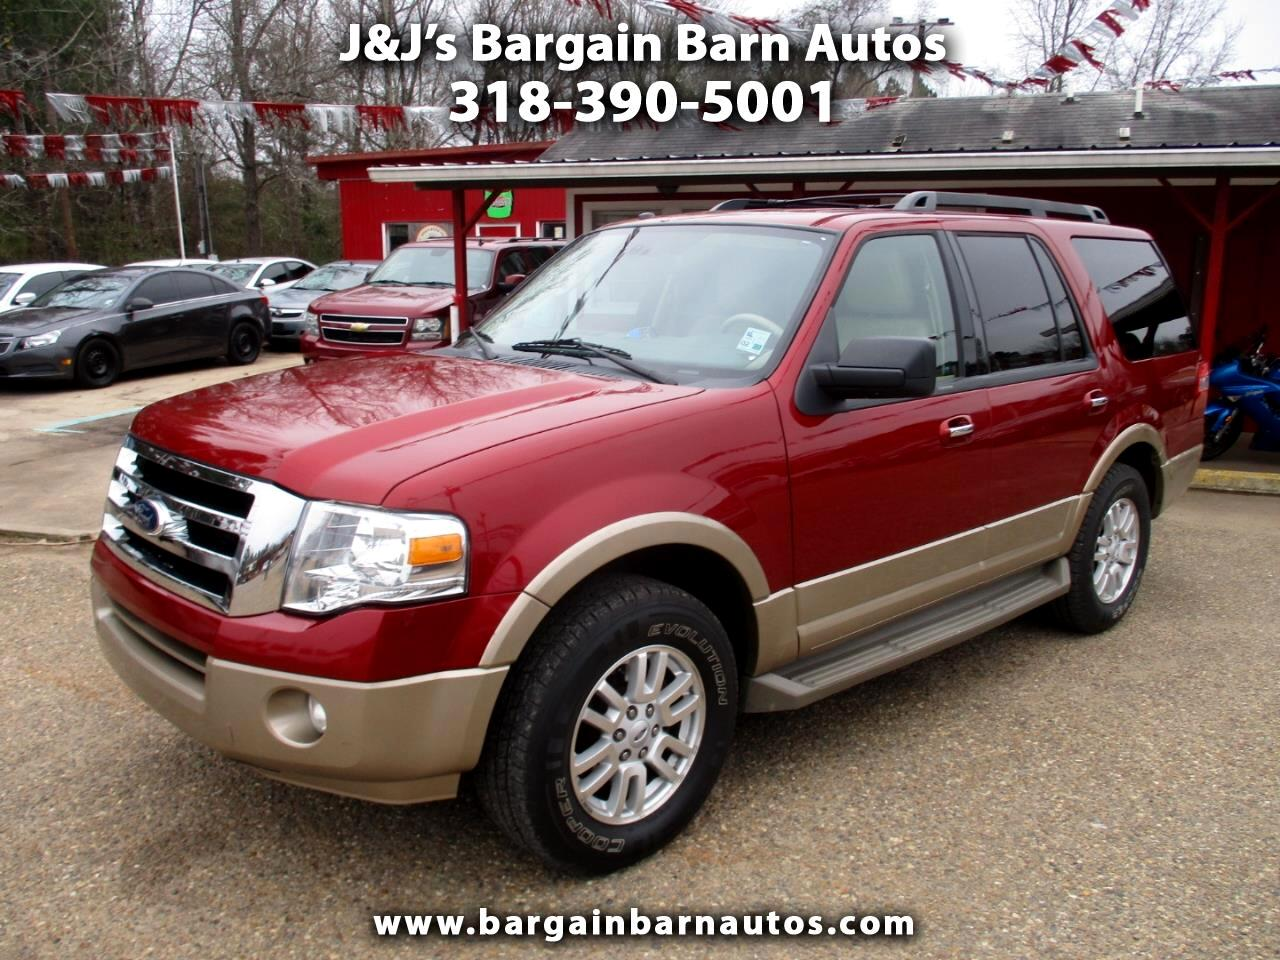 2014 Ford Expedition XLT 4.6L 2WD